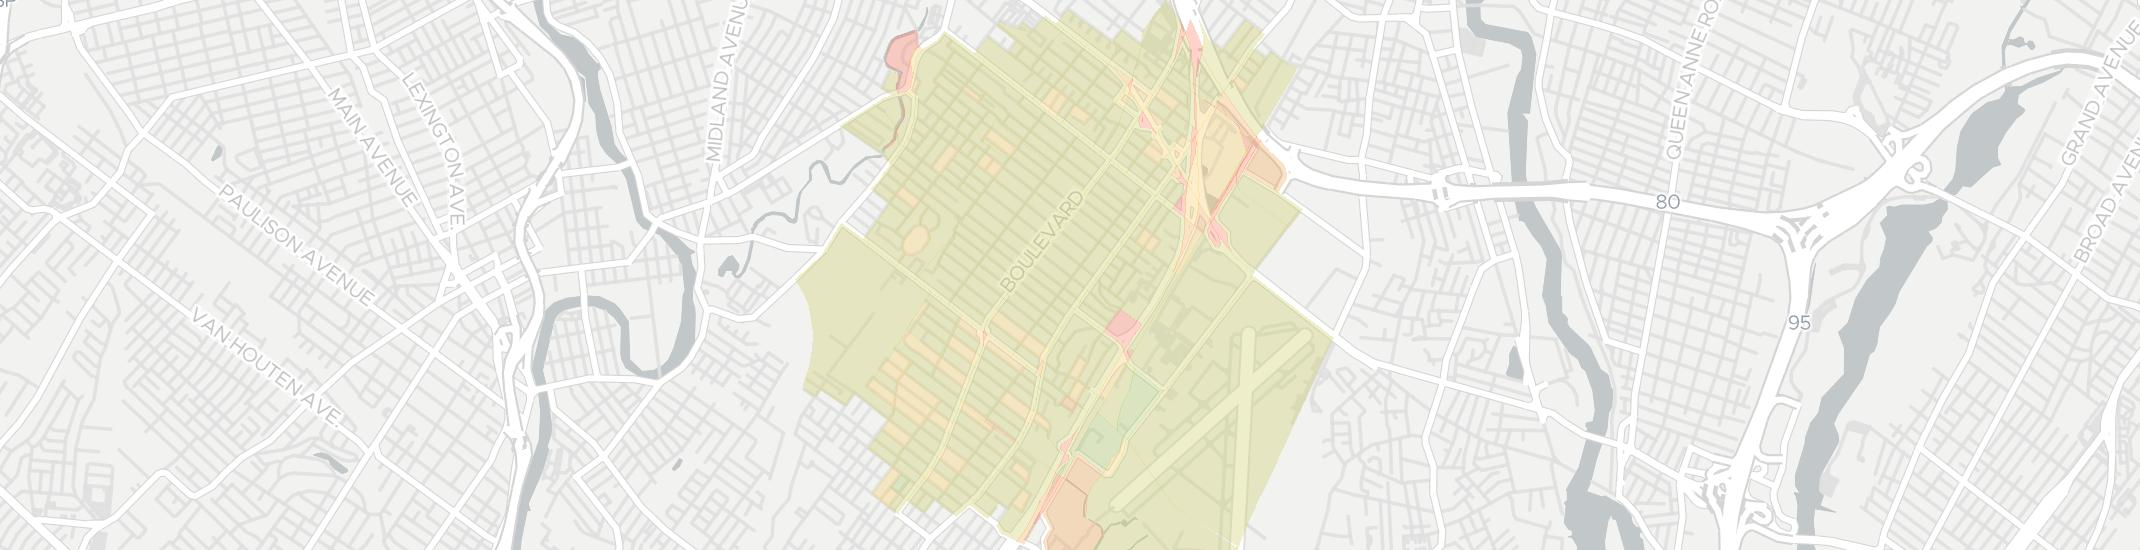 Hasbrouck Heights Internet Competition Map. Click for interactive map.